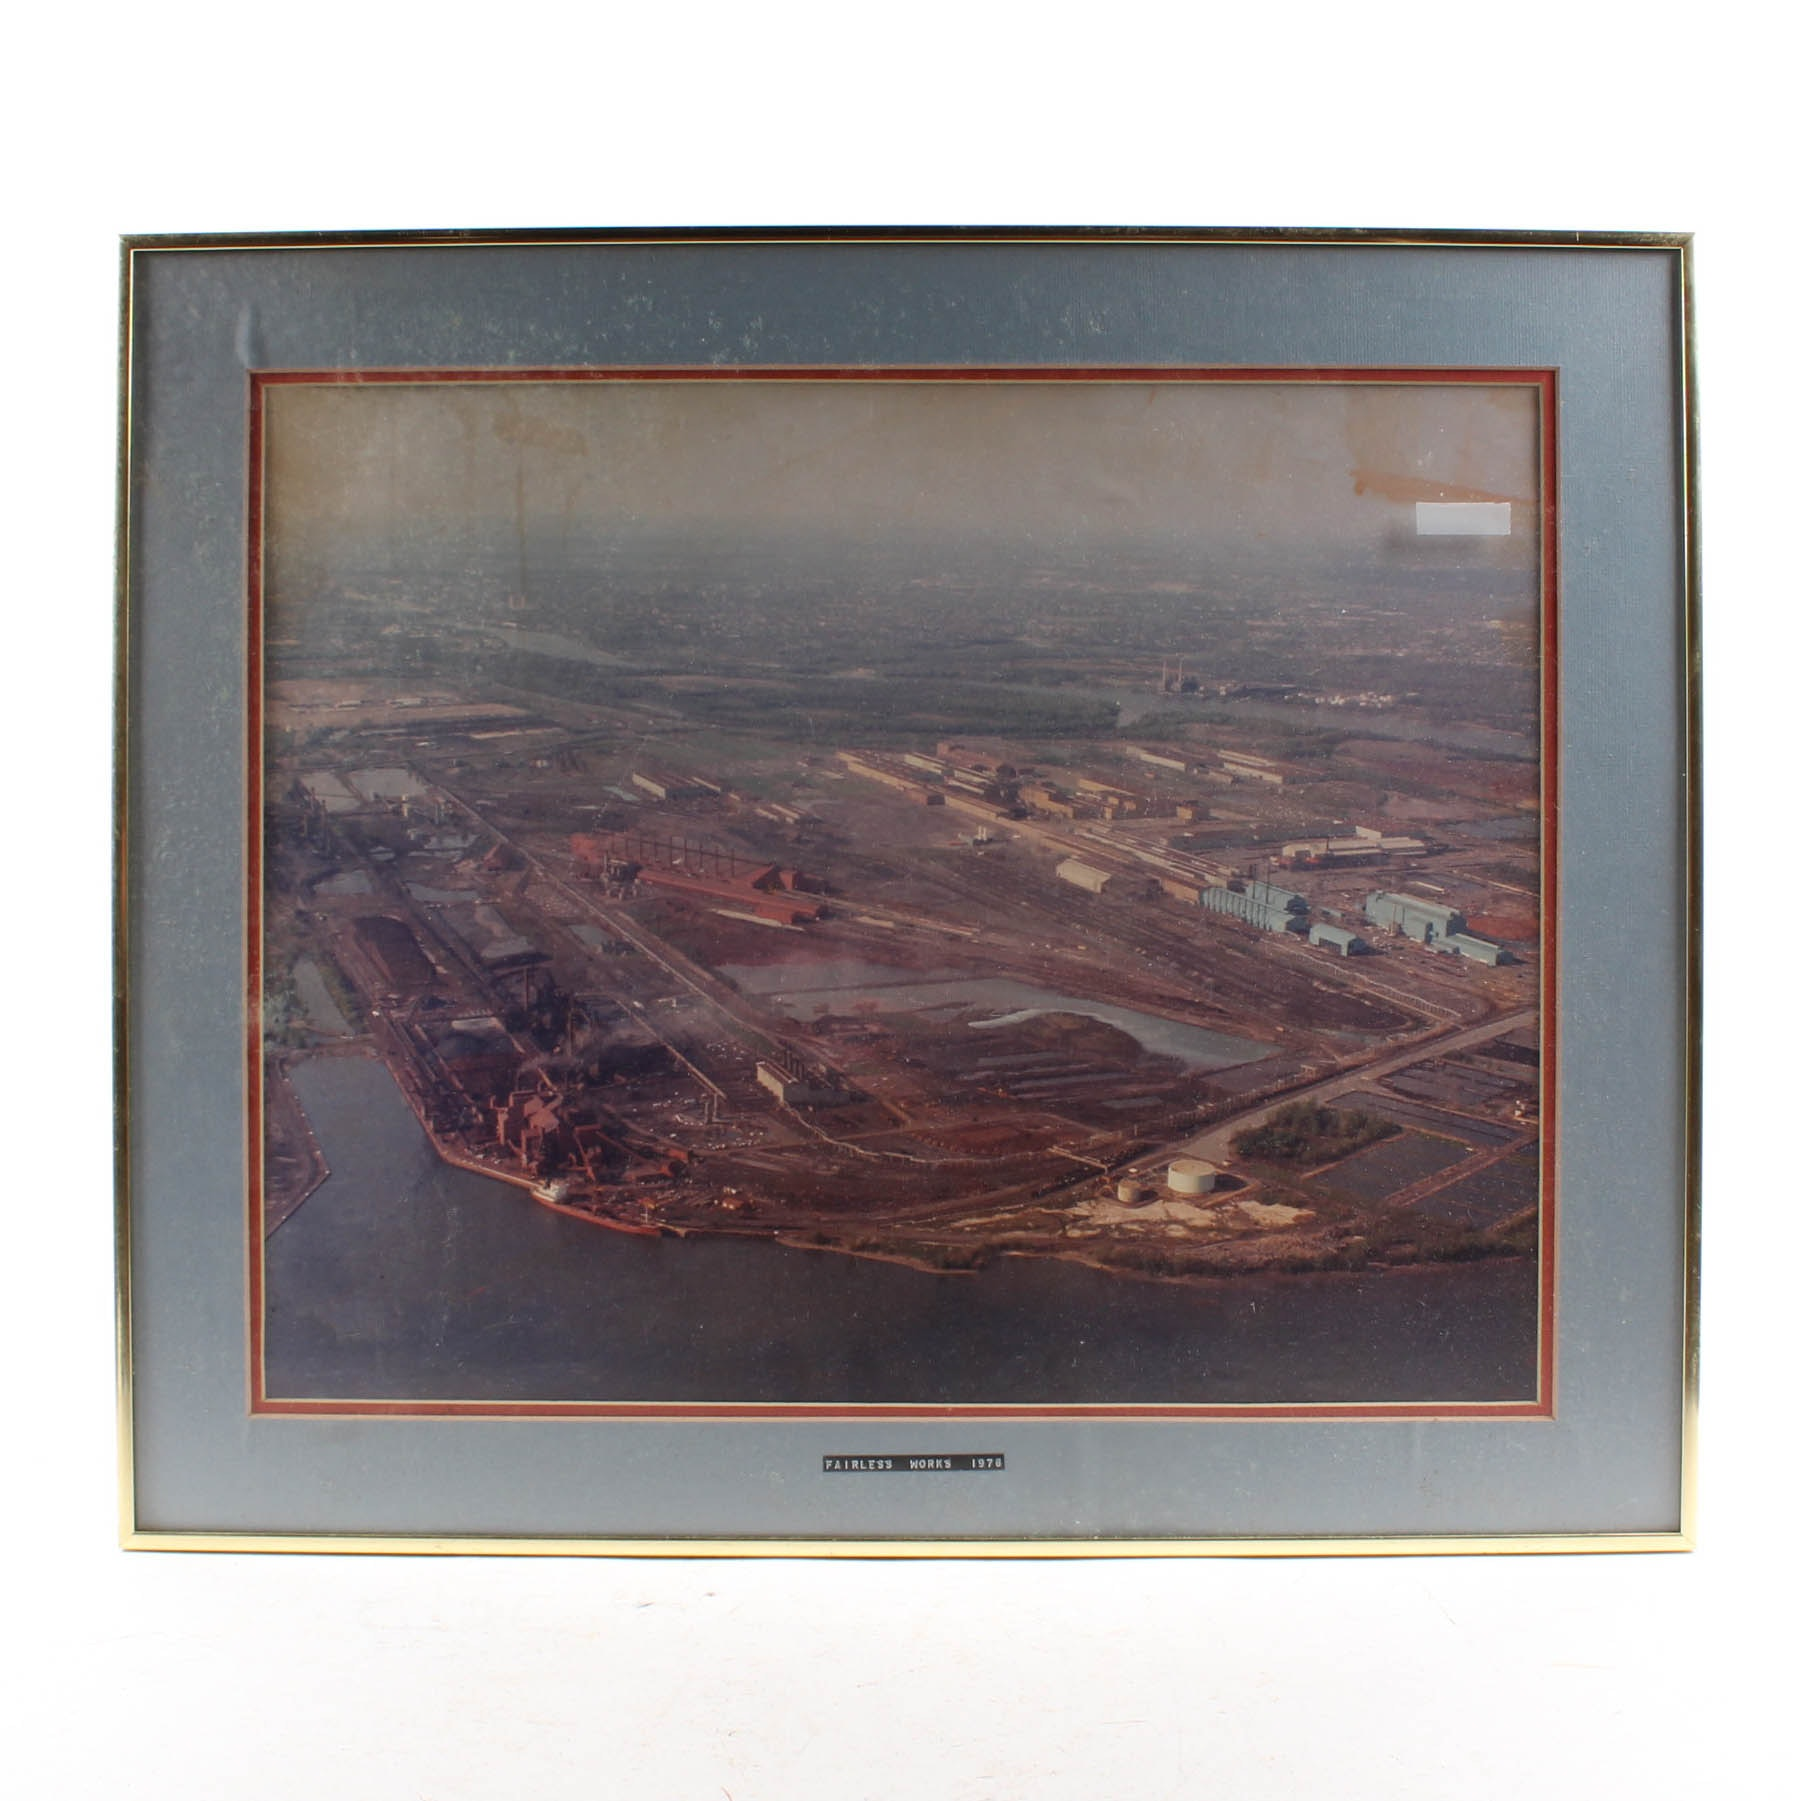 Vintage Aerial Photograph of US Steel Fairless Works